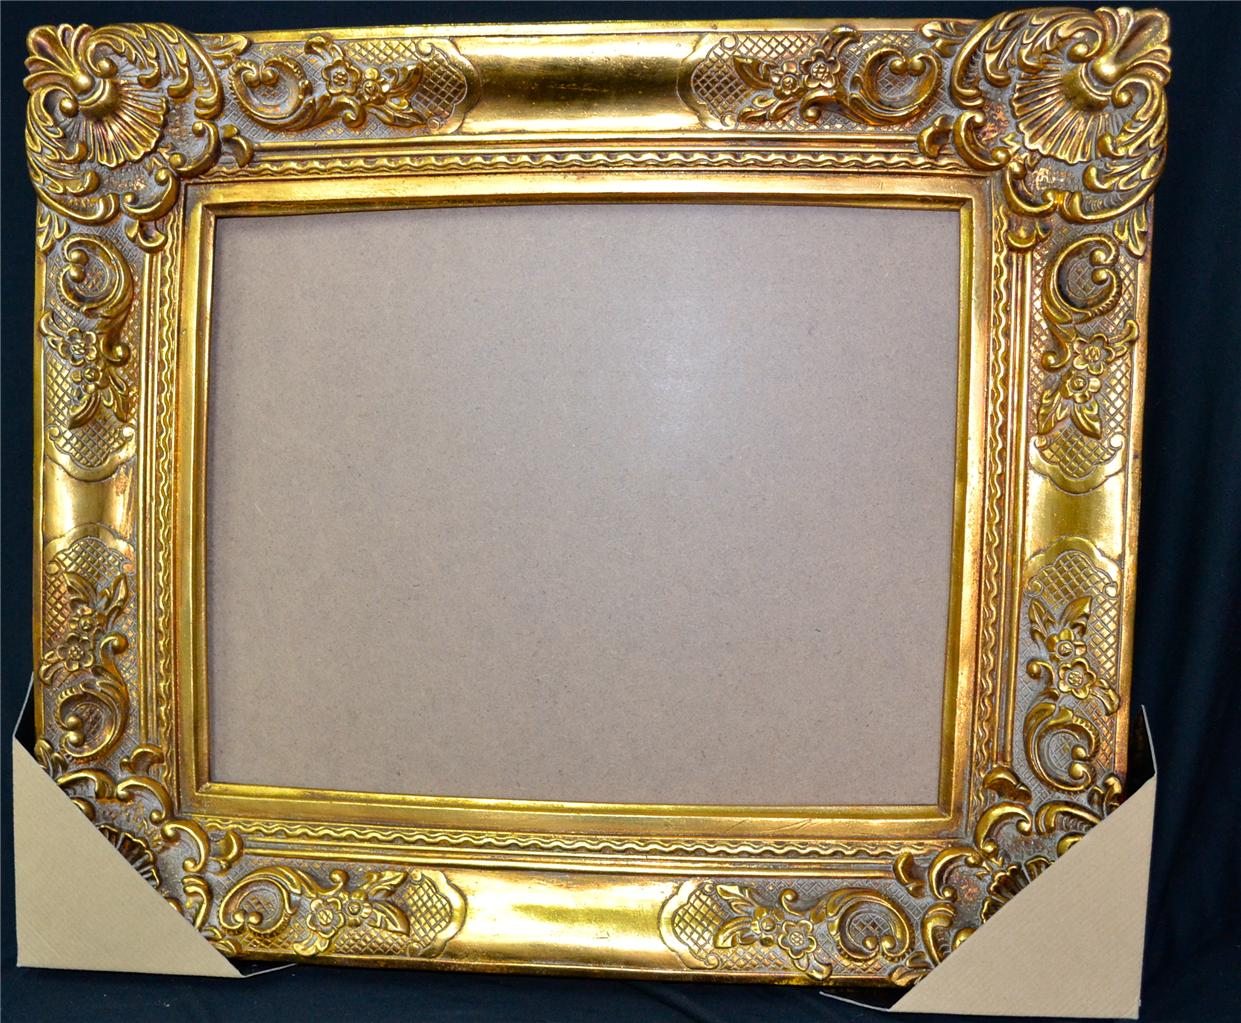 New antique french style wall mirror gold frame only ebay for Antique style wall mirror